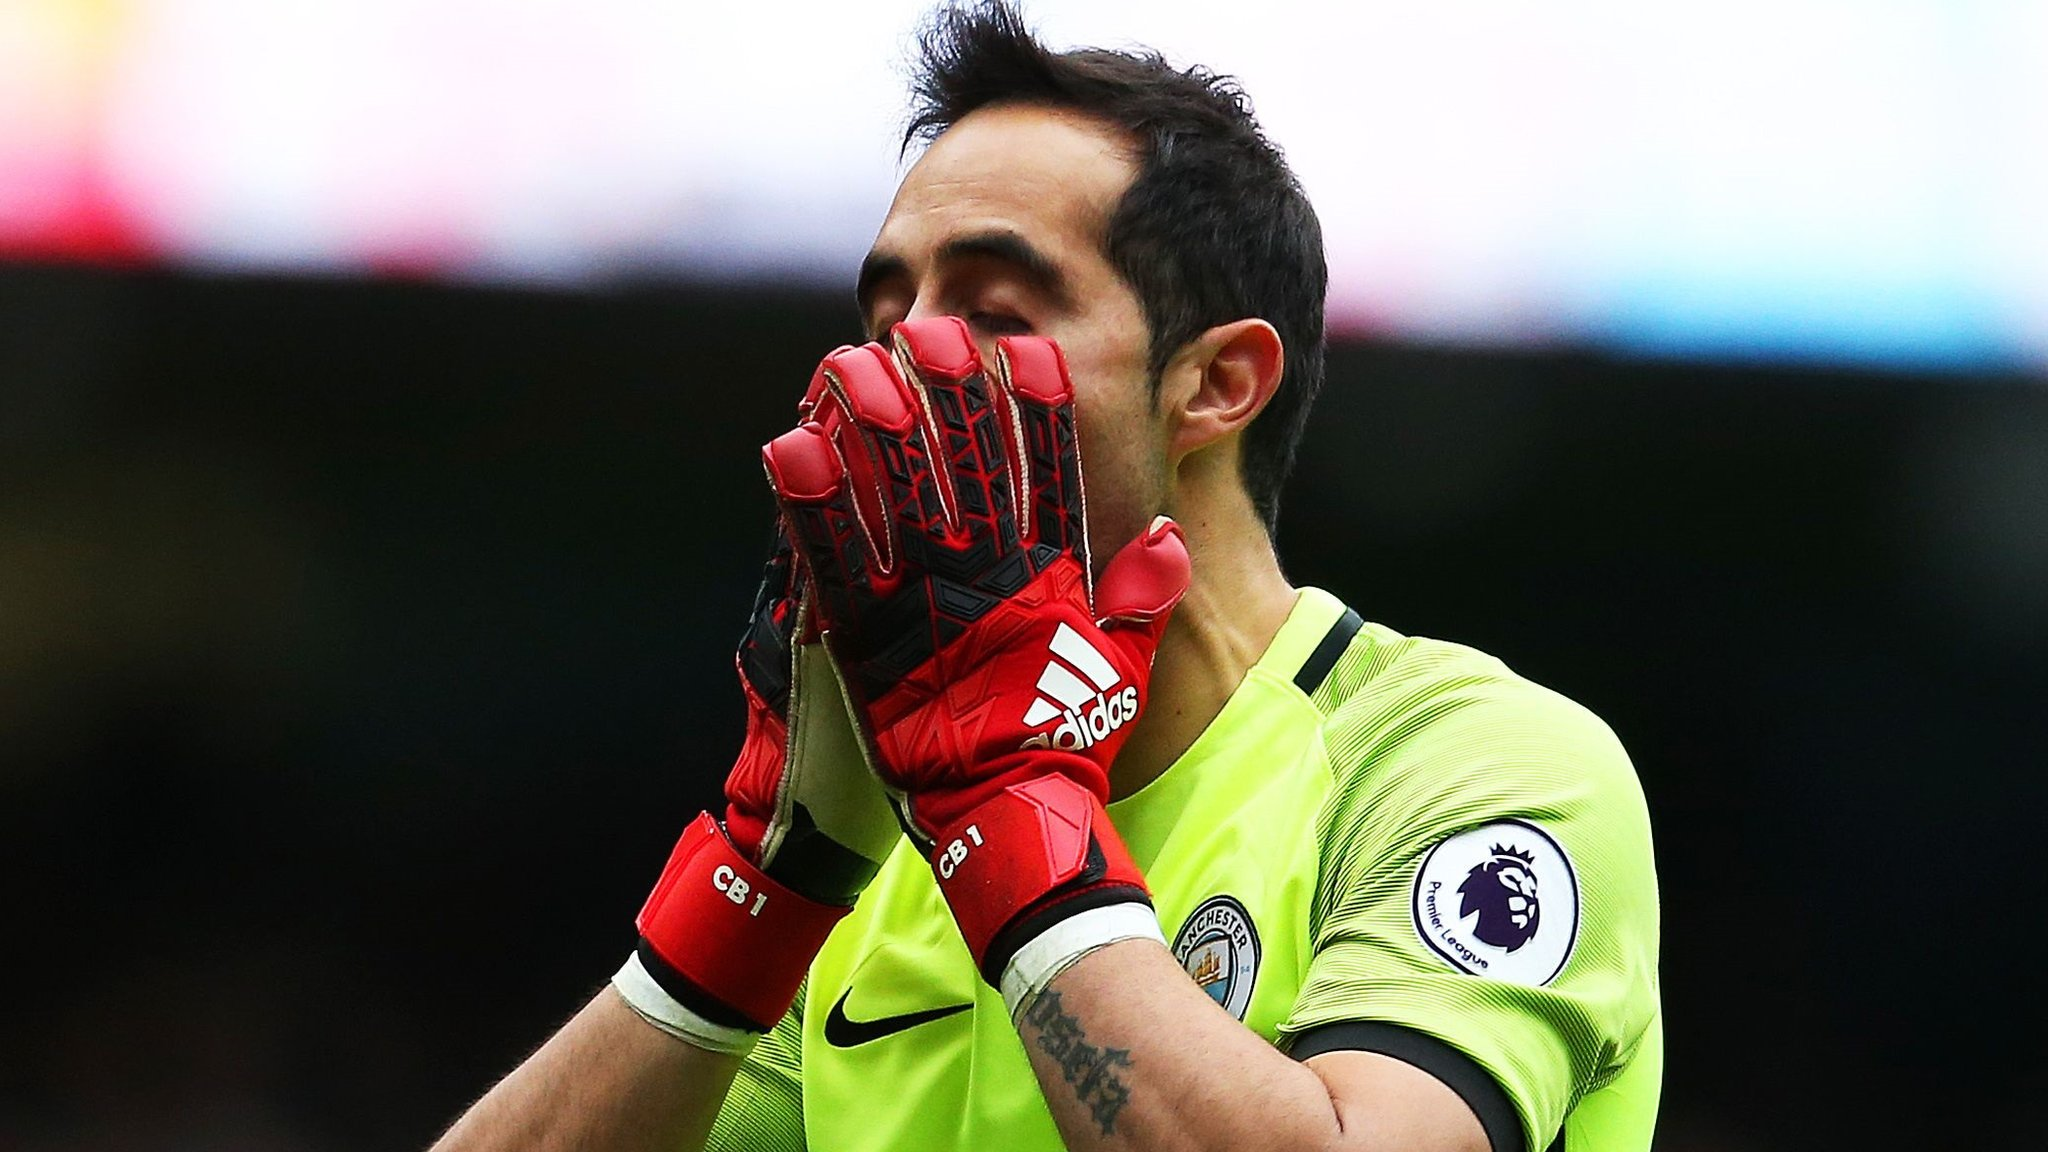 180 minutes, six shots, six goals conceded: Bravo's miserable run continues